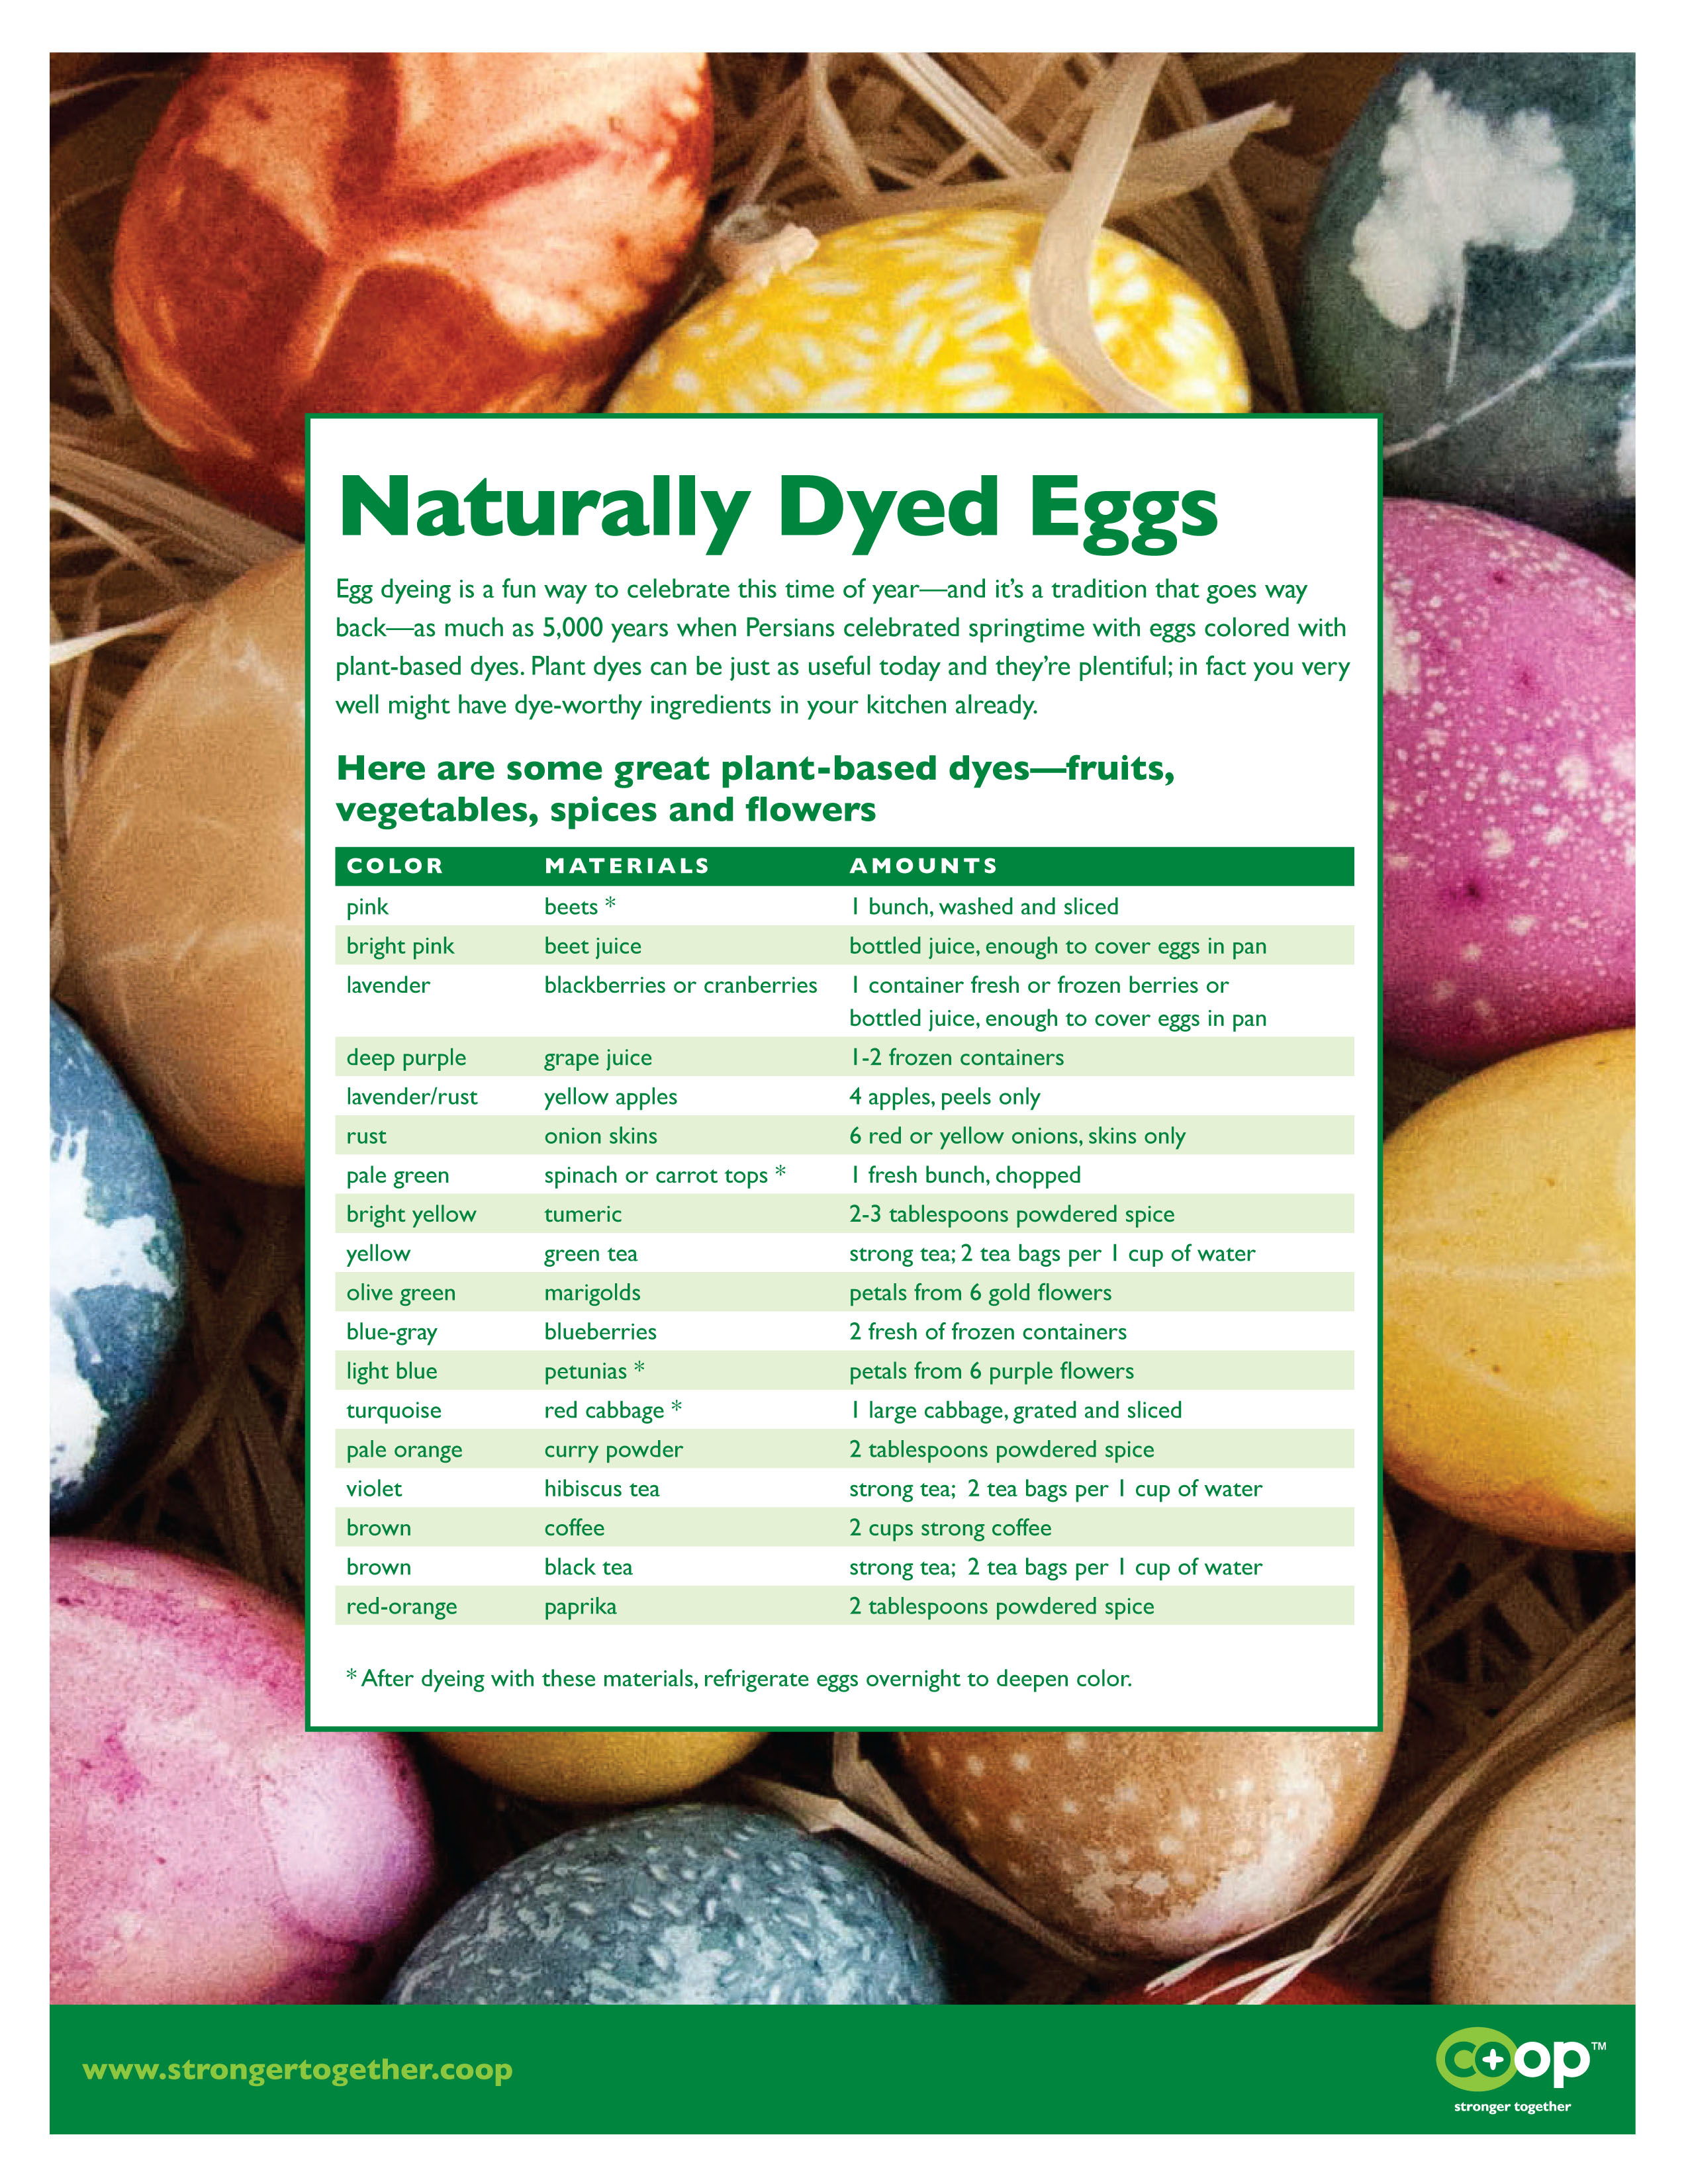 2013_Naturally_Dyed_Eggs_Handout(1)-1